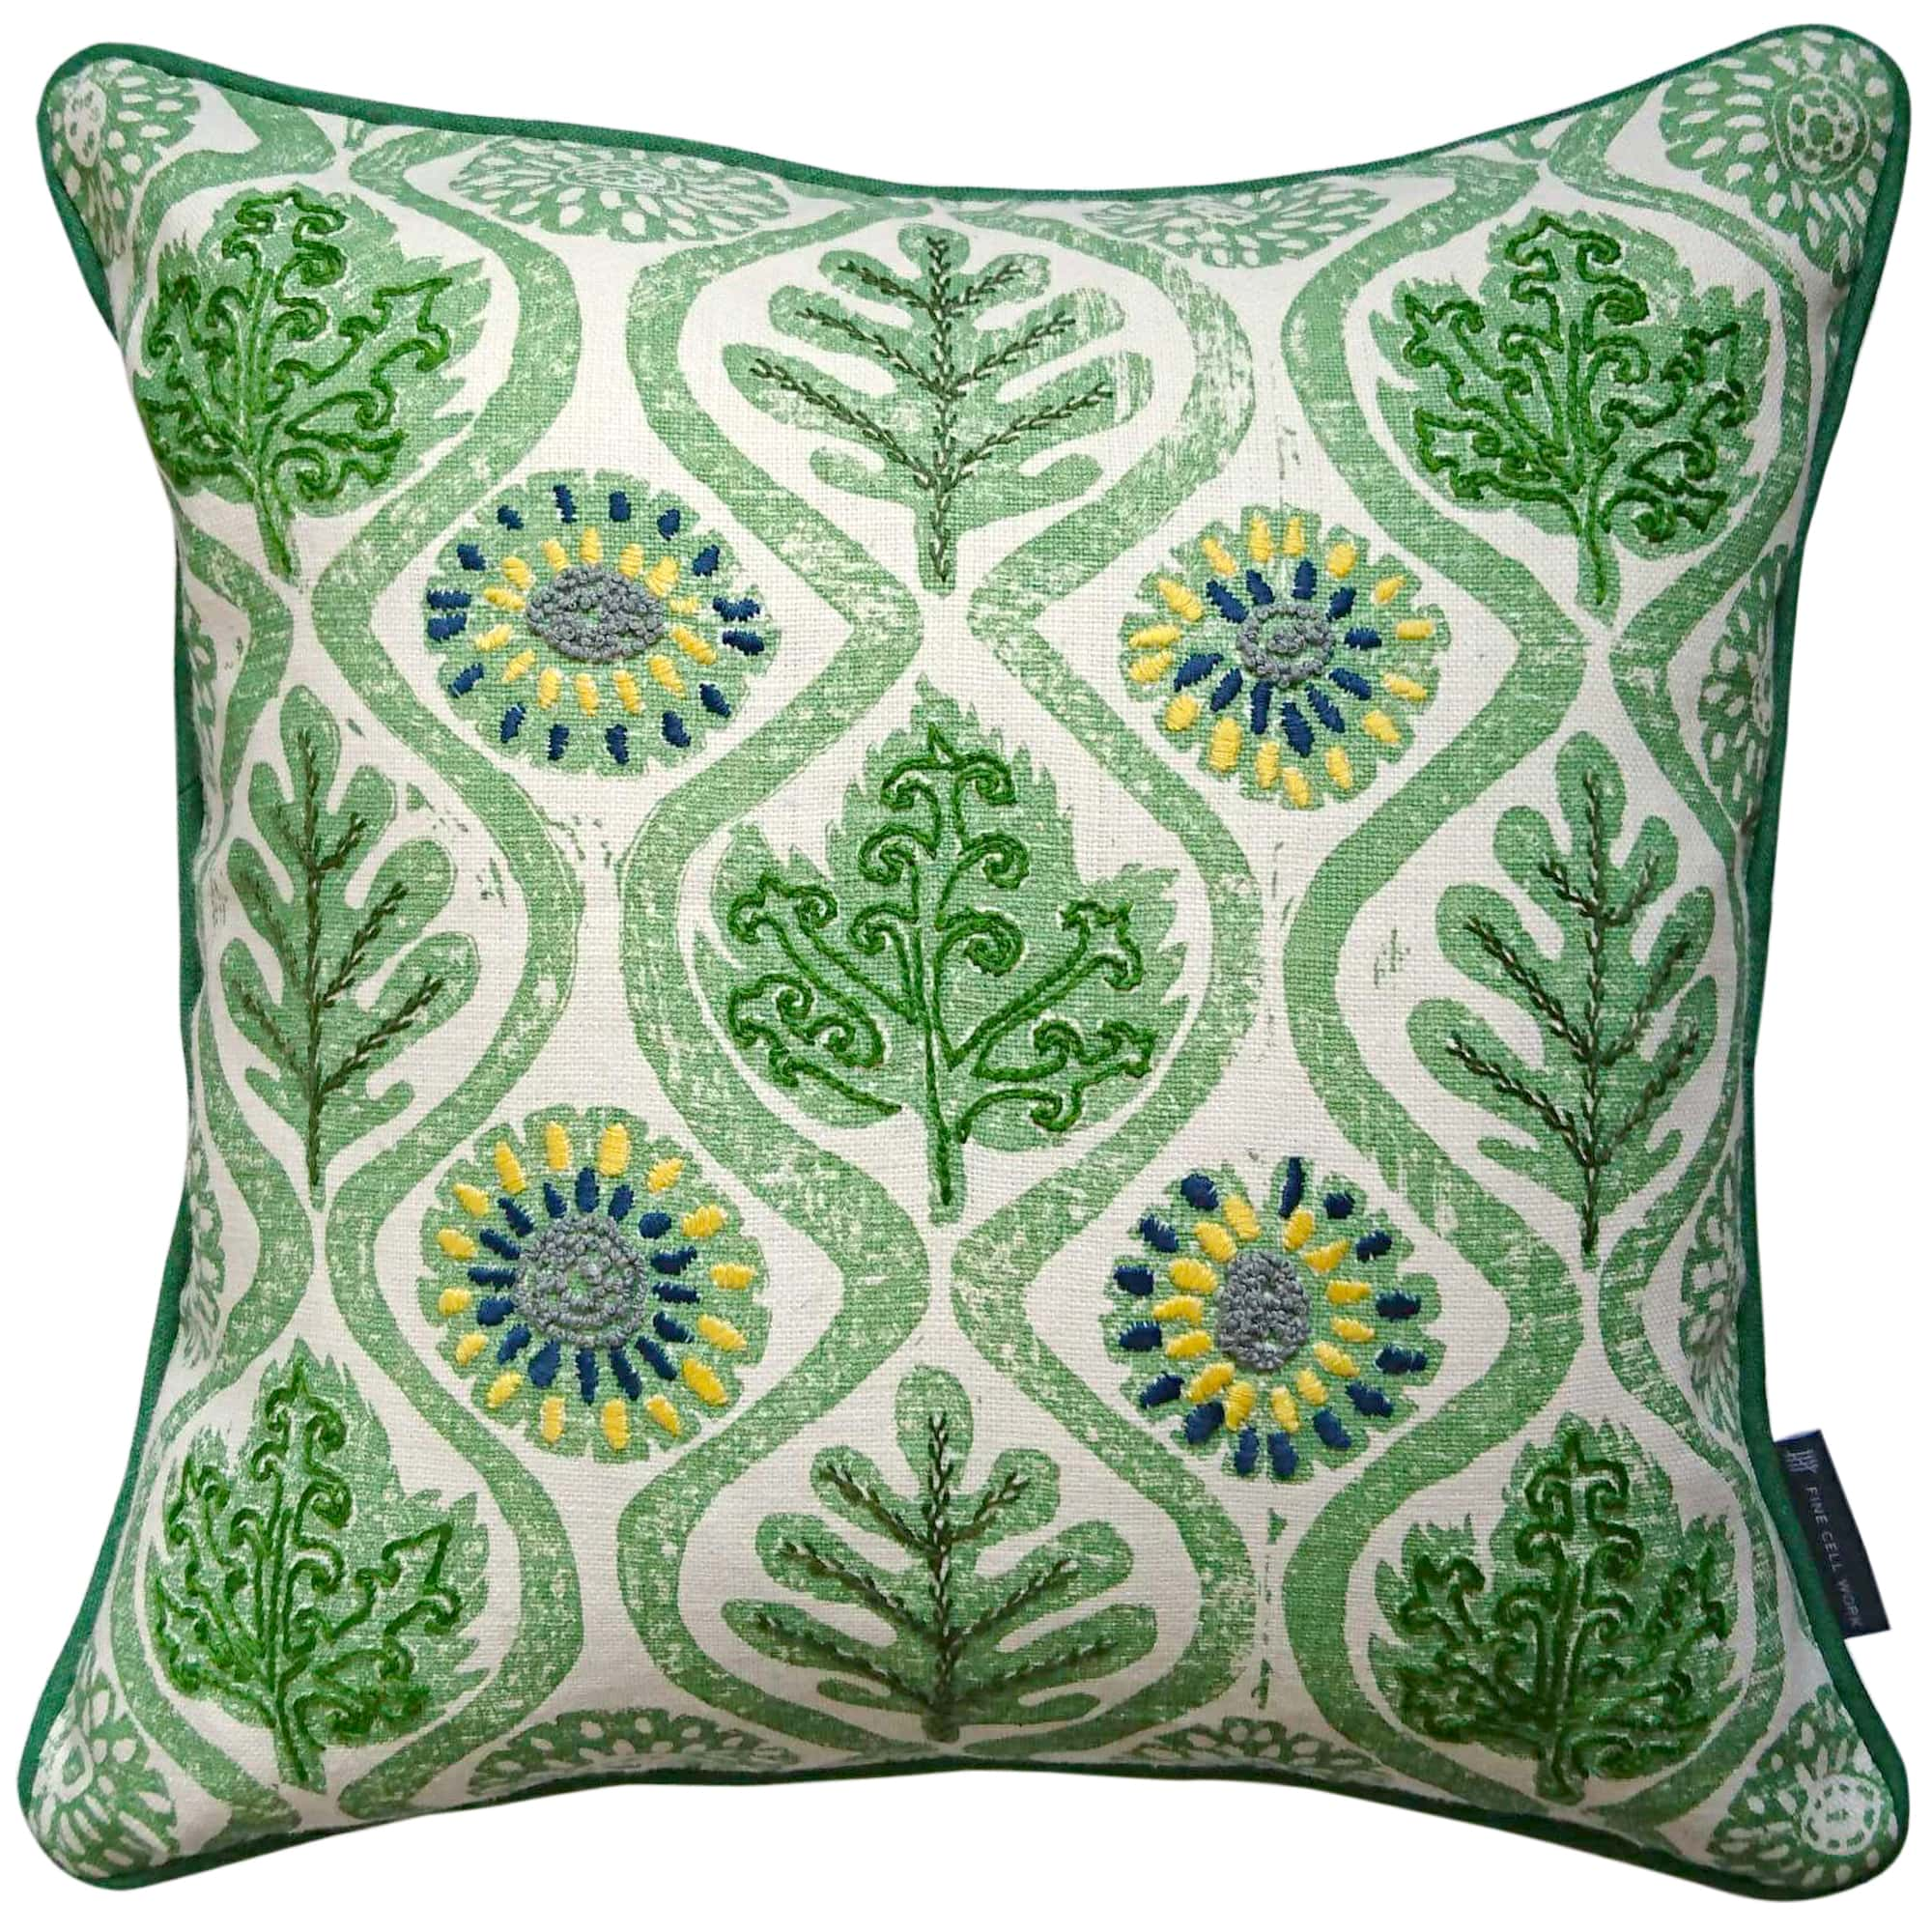 Fine Cell Work Hand-Embroidered Blithfield Kit Kemp Peggy Angus Oakleaves Irish Linen Cushion Yellow Leaf Green Handmade in Prison